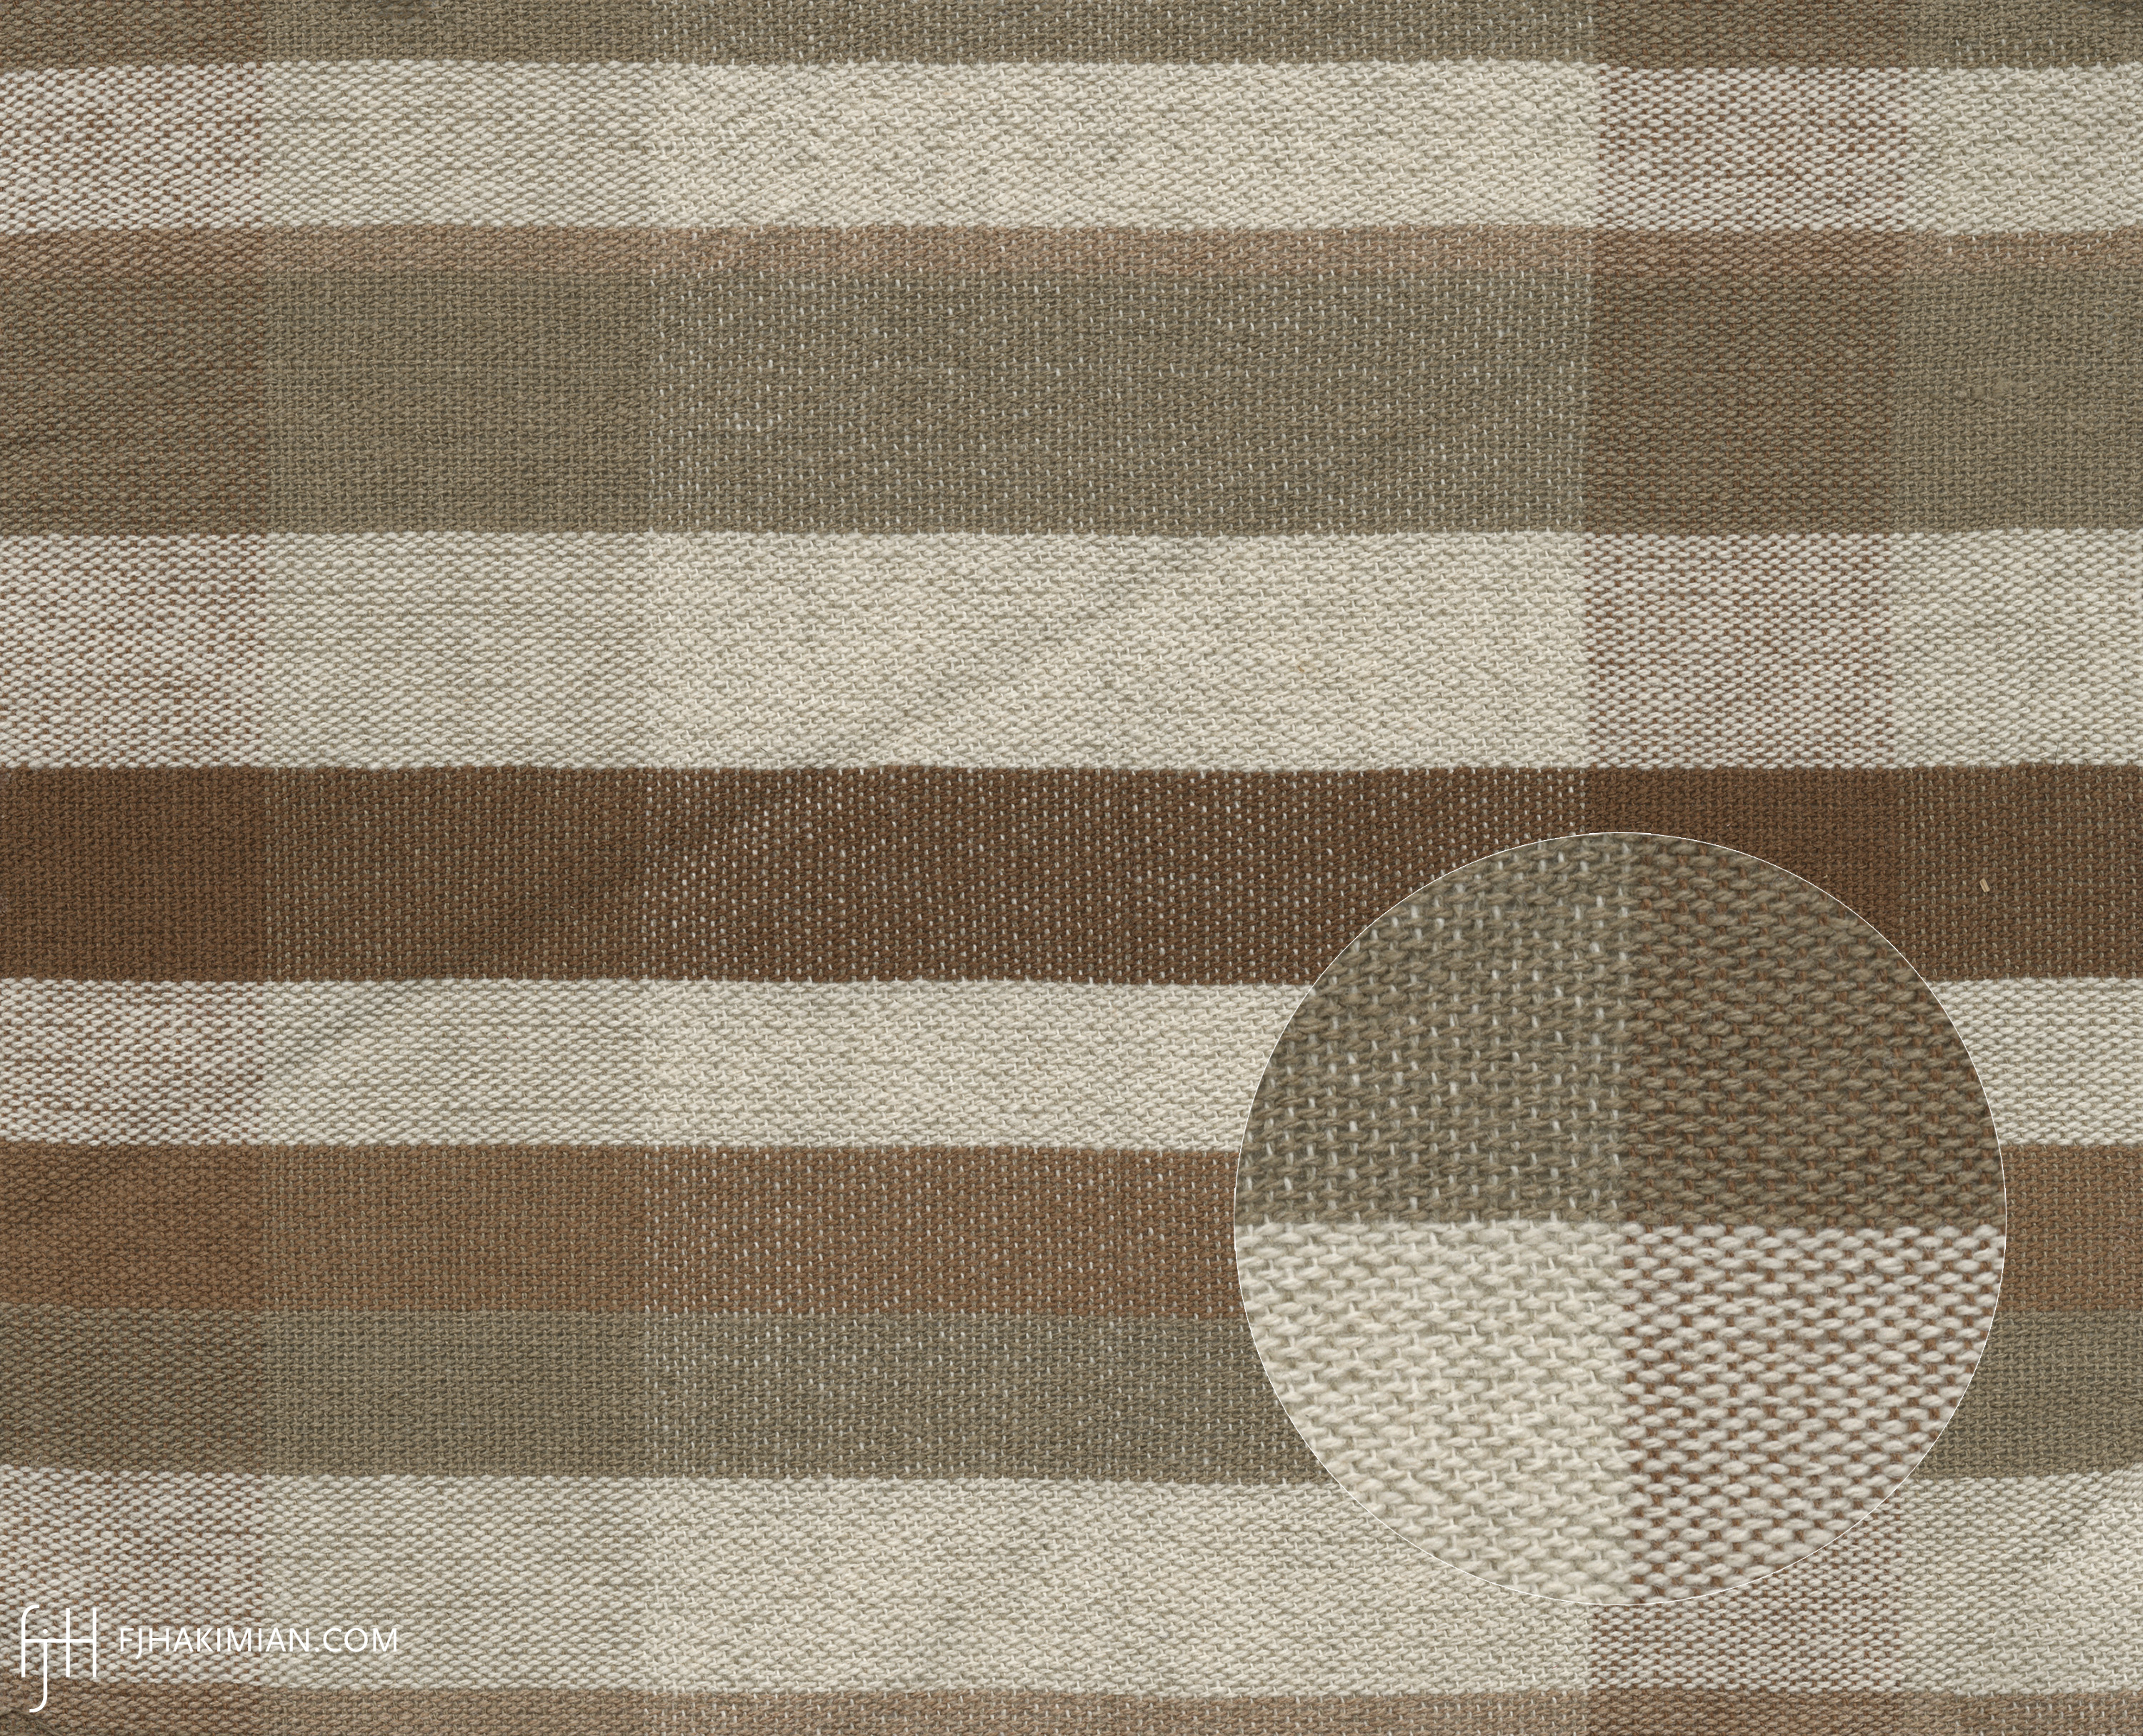 Upholstery Fabric WY-08L-Bone-Olive-Brown | FJ Hakimian